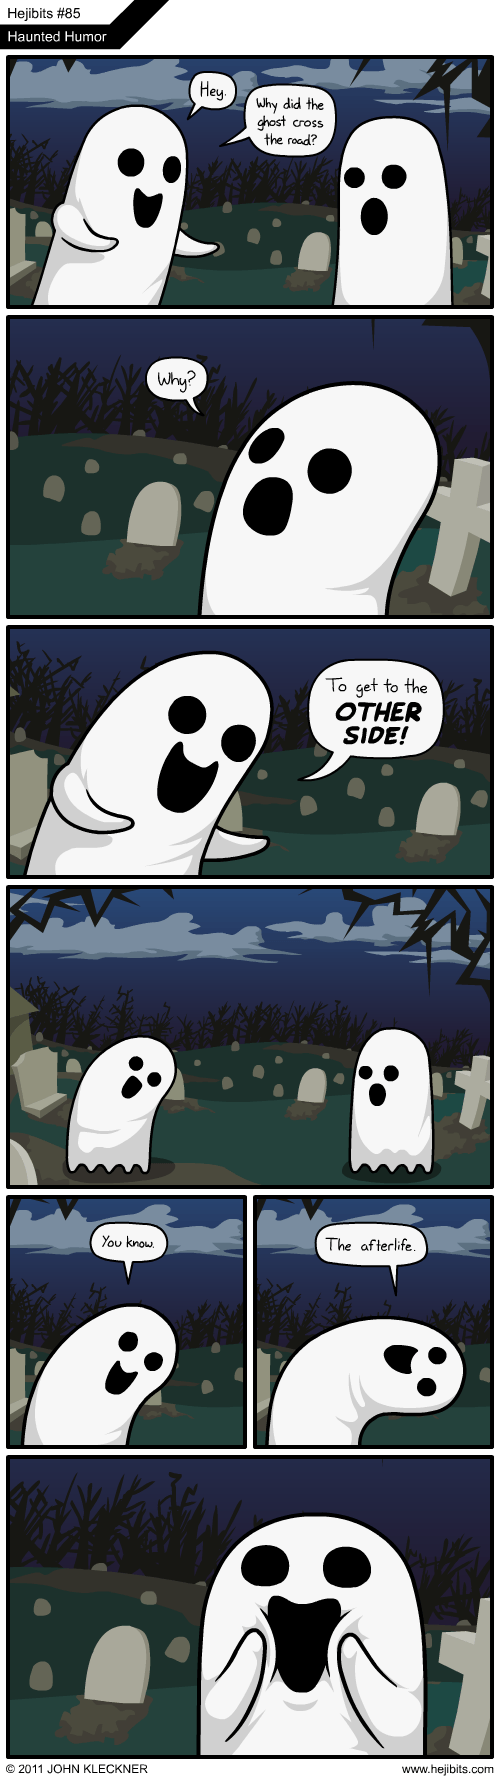 Cartoon - Hejibits #85 Haunted Humor Hey Why did the ghost cross the road? Why? To get to the OTHER SIDE! You know. The afterlife. © 2011 JOHN KLECKNER www.hejibits.com